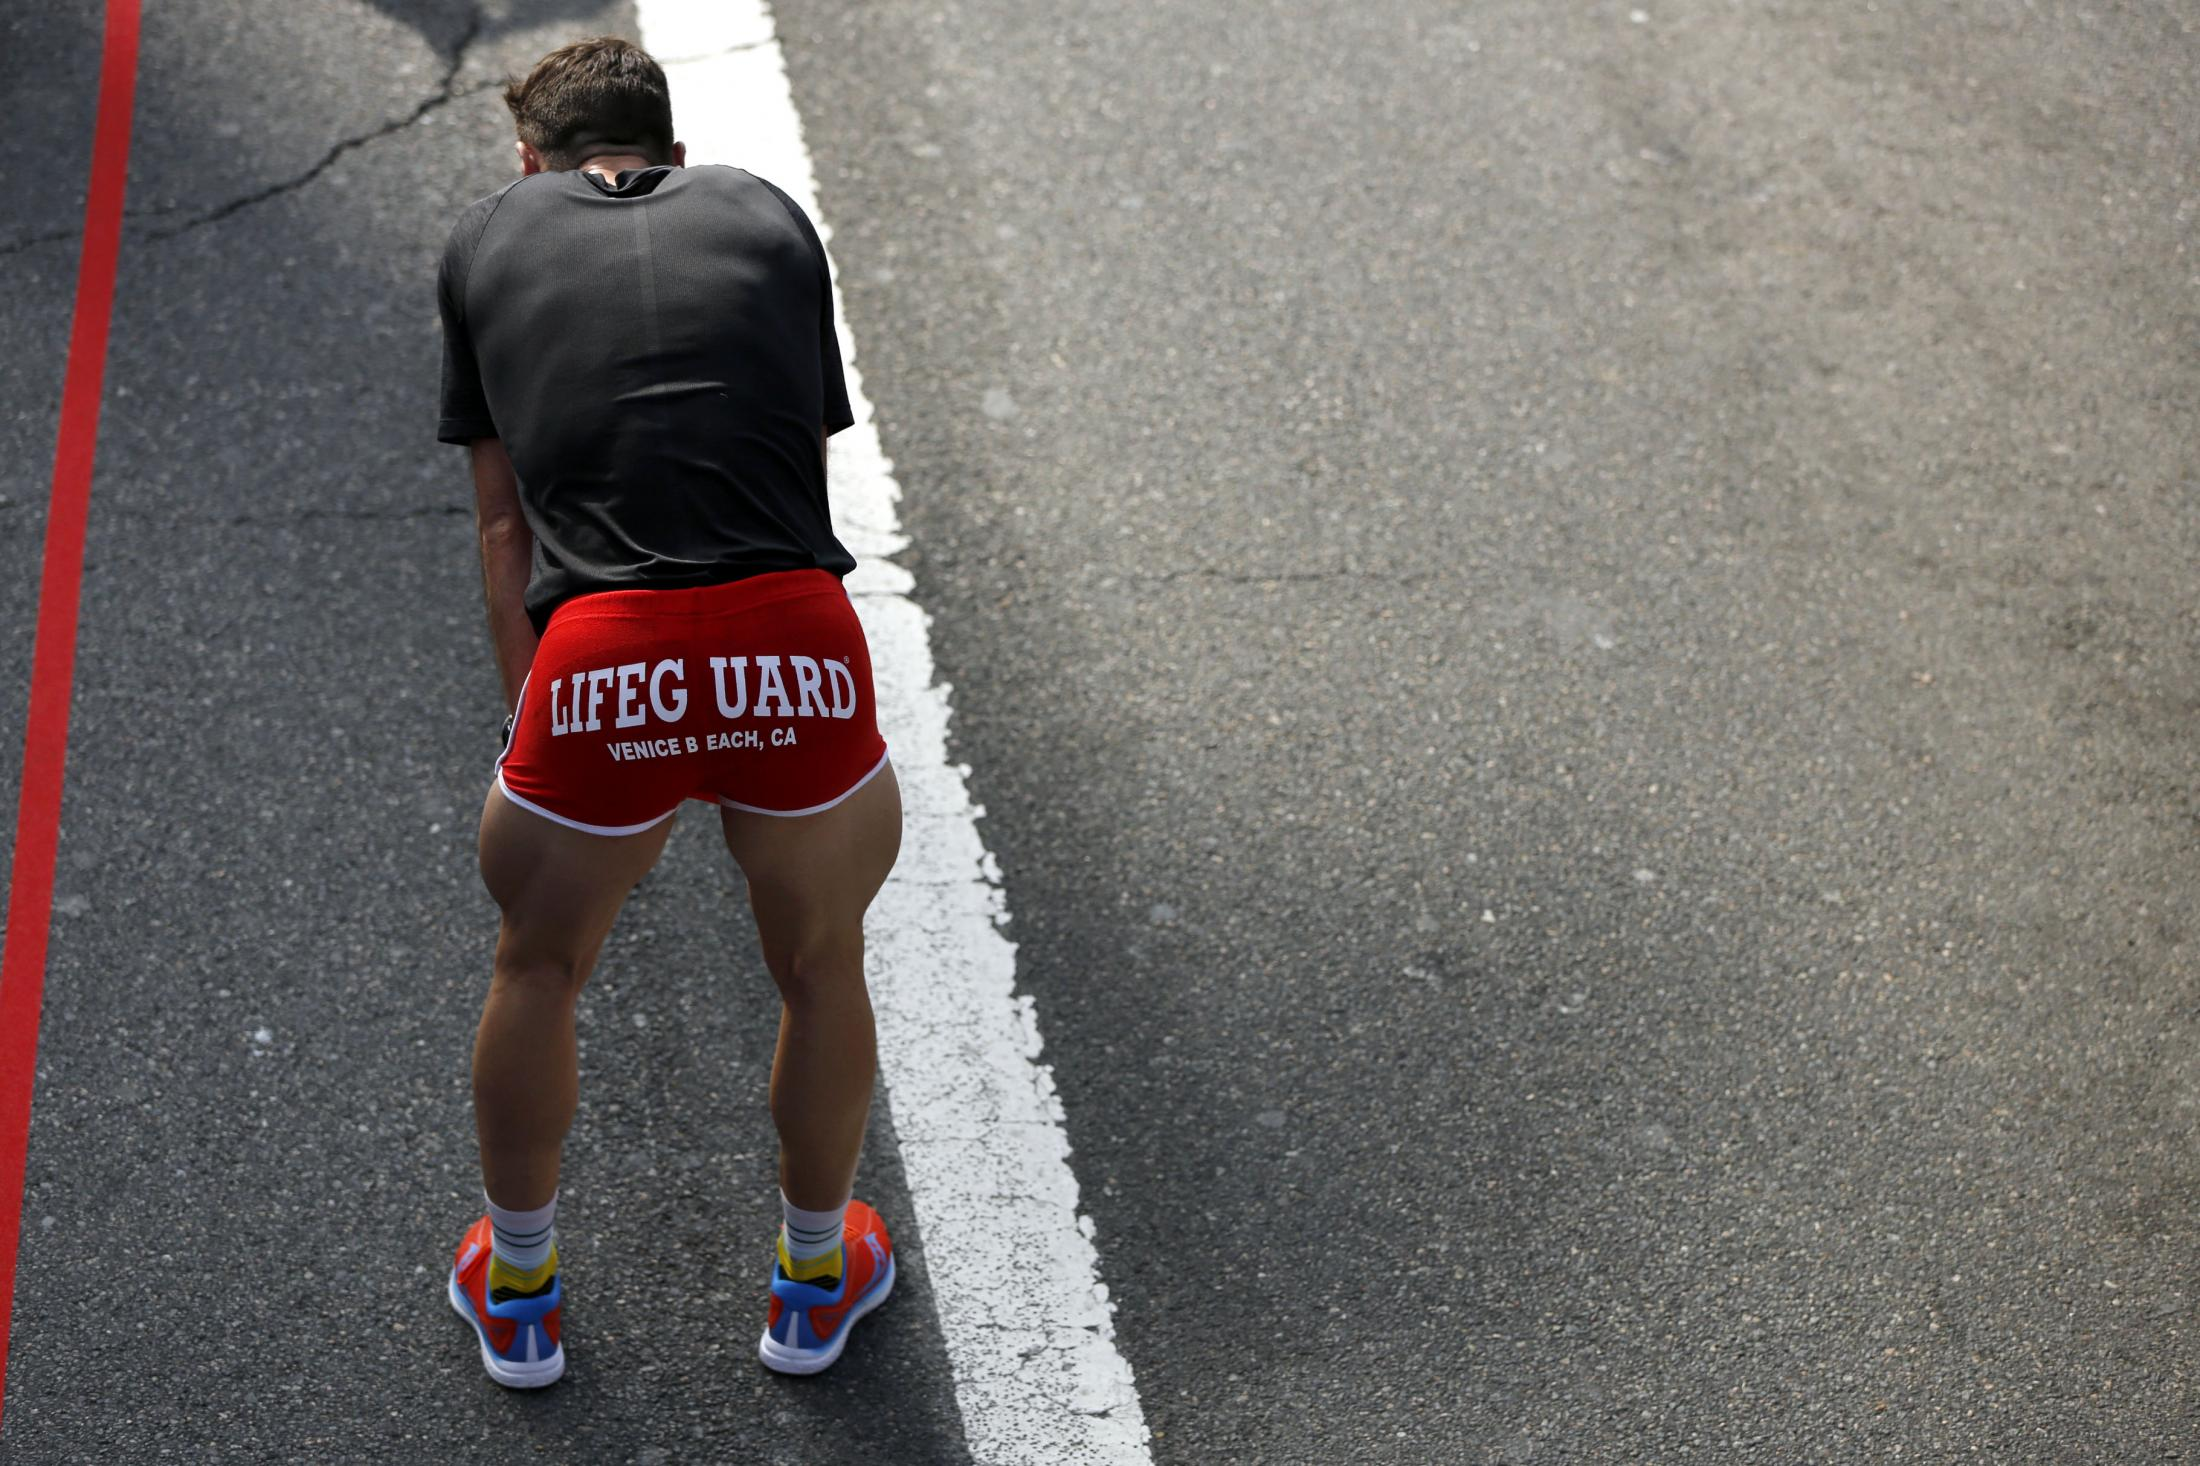 LOS ANGELES, CALIFORNIA - MARCH 24:  A runner rests after crossing the finish line of the 2019 Skechers Performance Los Angeles Marathon on March 24, 2019 in Los Angeles, California. (Photo by Katharine Lotze/Getty Images)